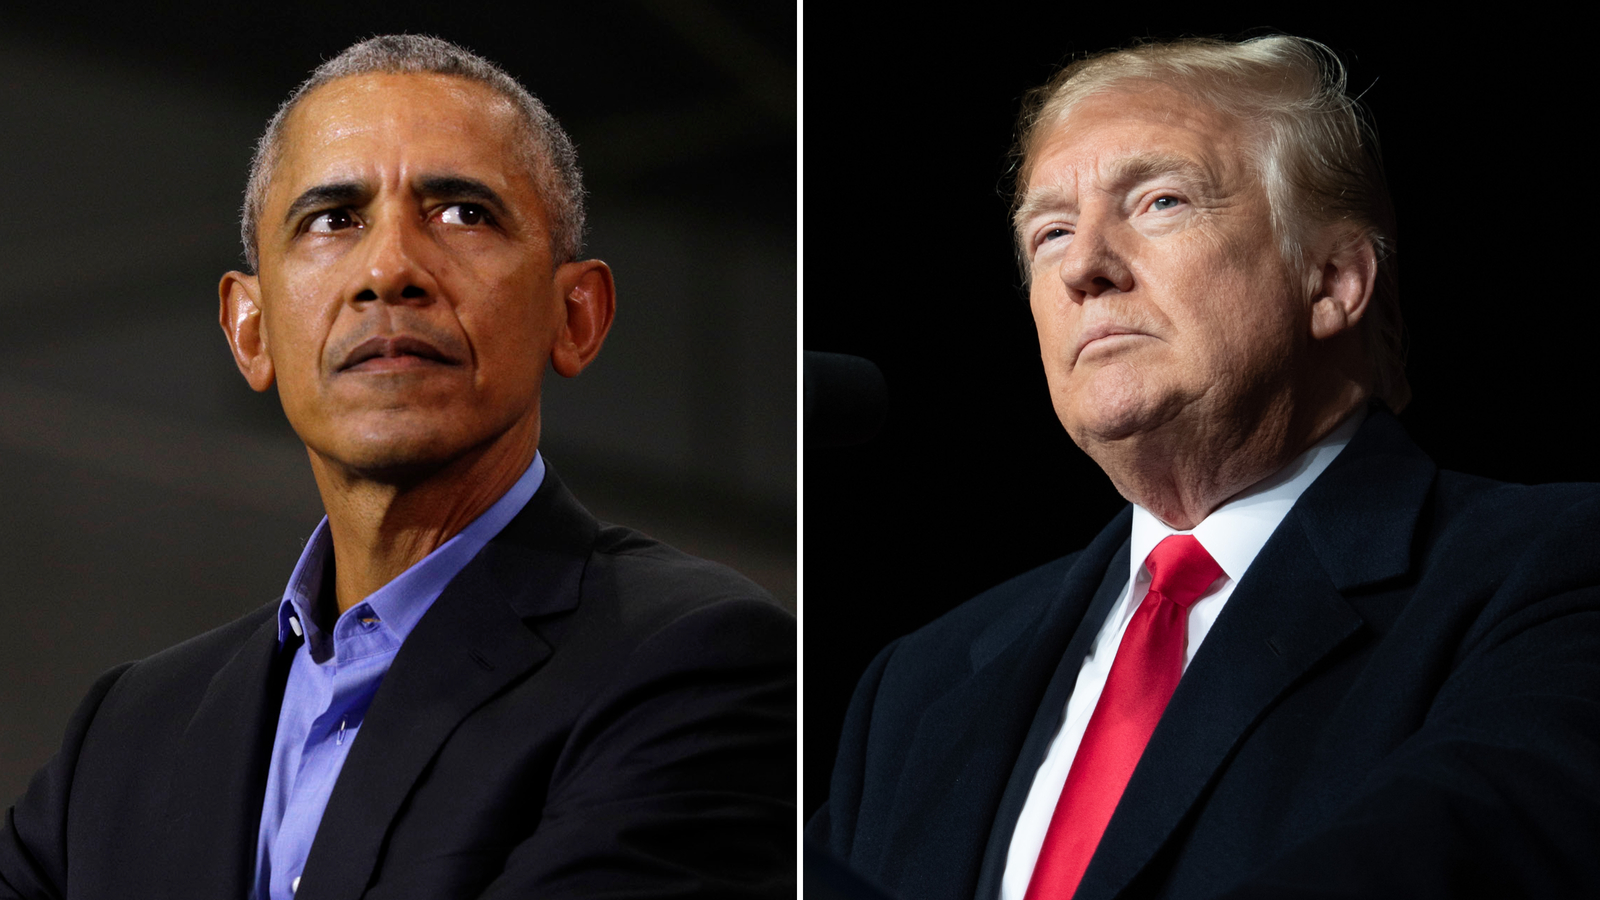 Fact check: How Trump's economy compares to Obama's